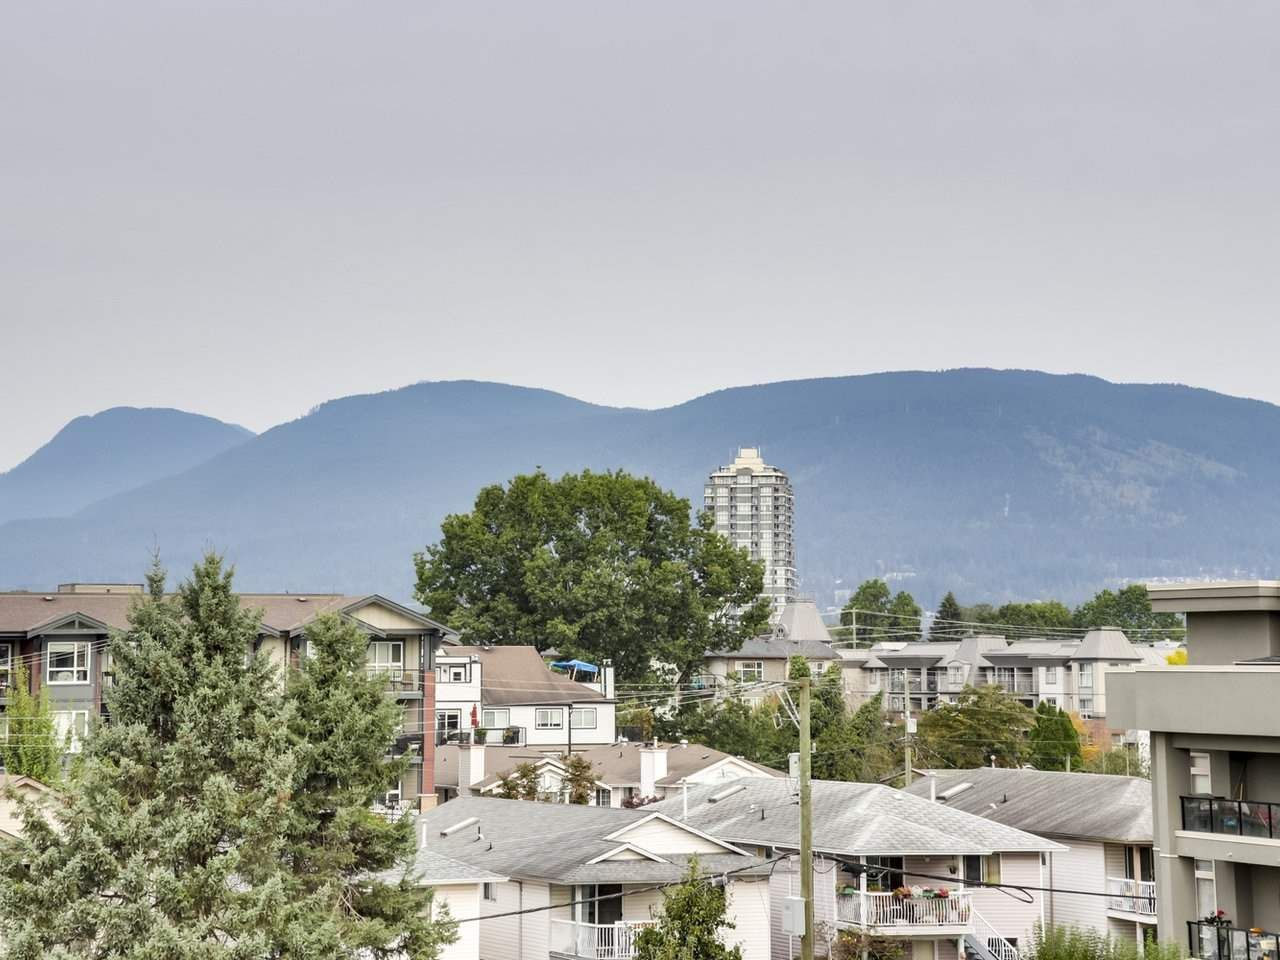 """Main Photo: 402 2388 WELCHER Avenue in Port Coquitlam: Central Pt Coquitlam Condo for sale in """"Parkgreen"""" : MLS®# R2506056"""